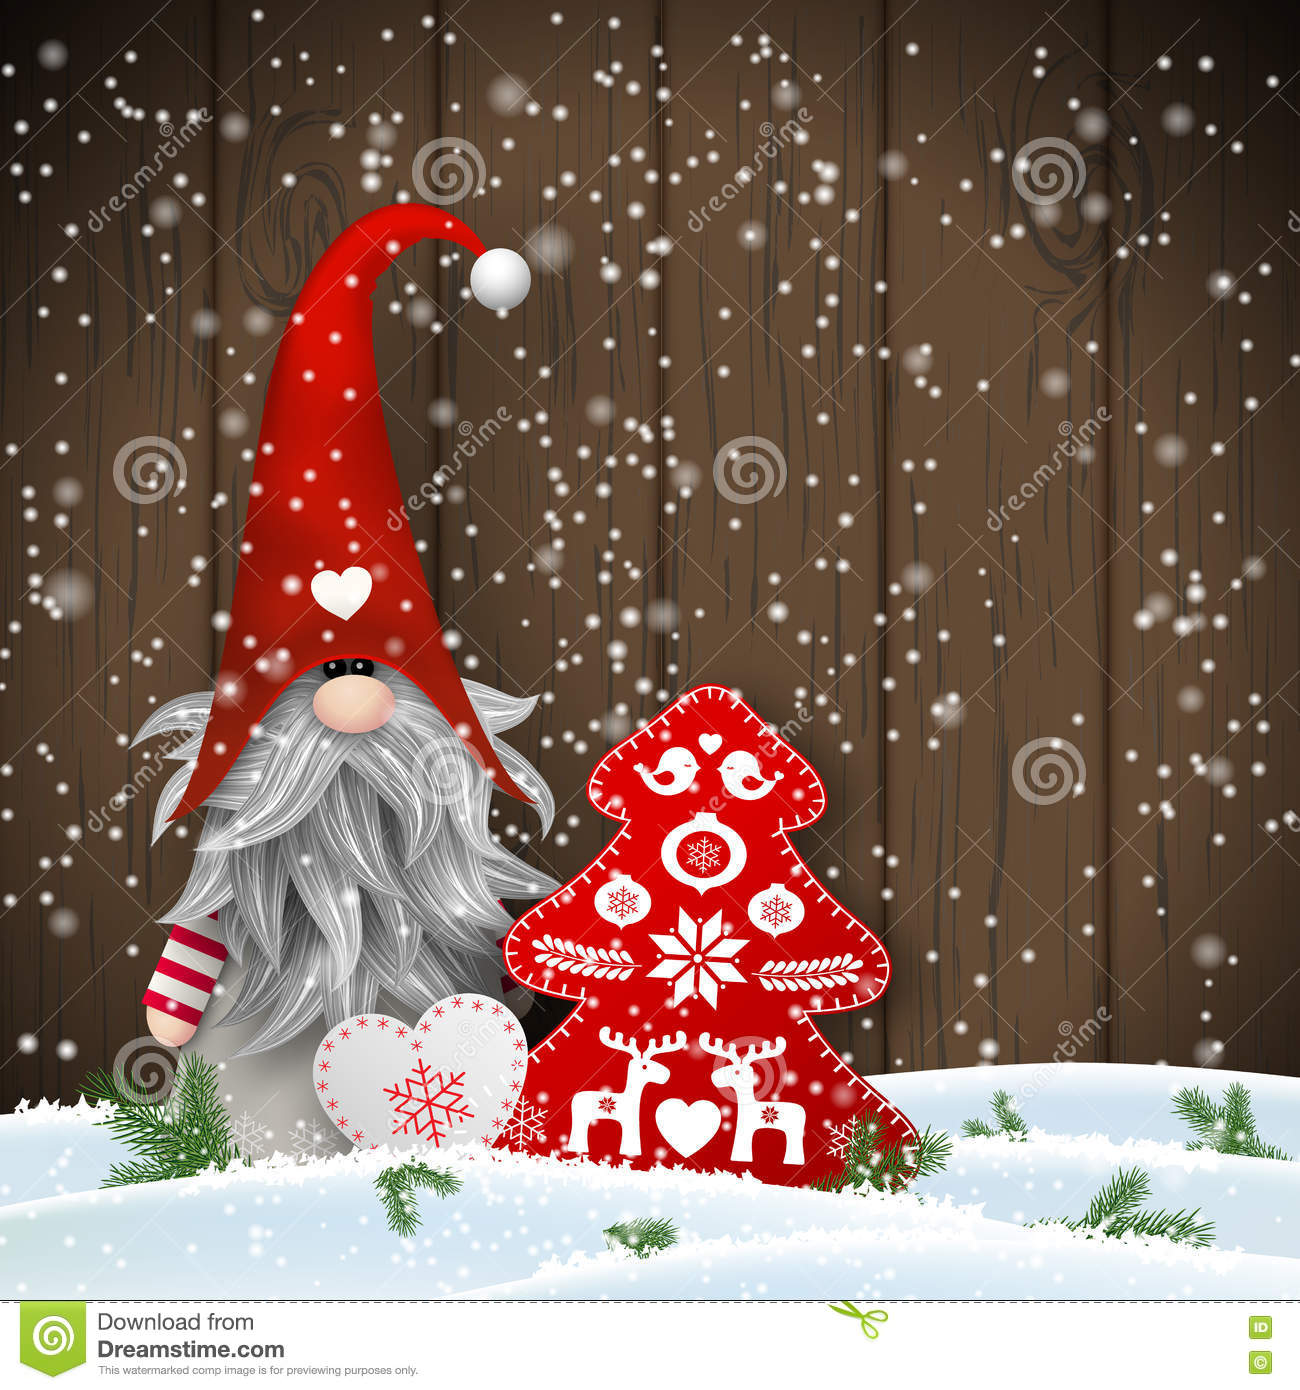 scandinavian christmas traditional gnome tomte with other seasonal decorations illustration